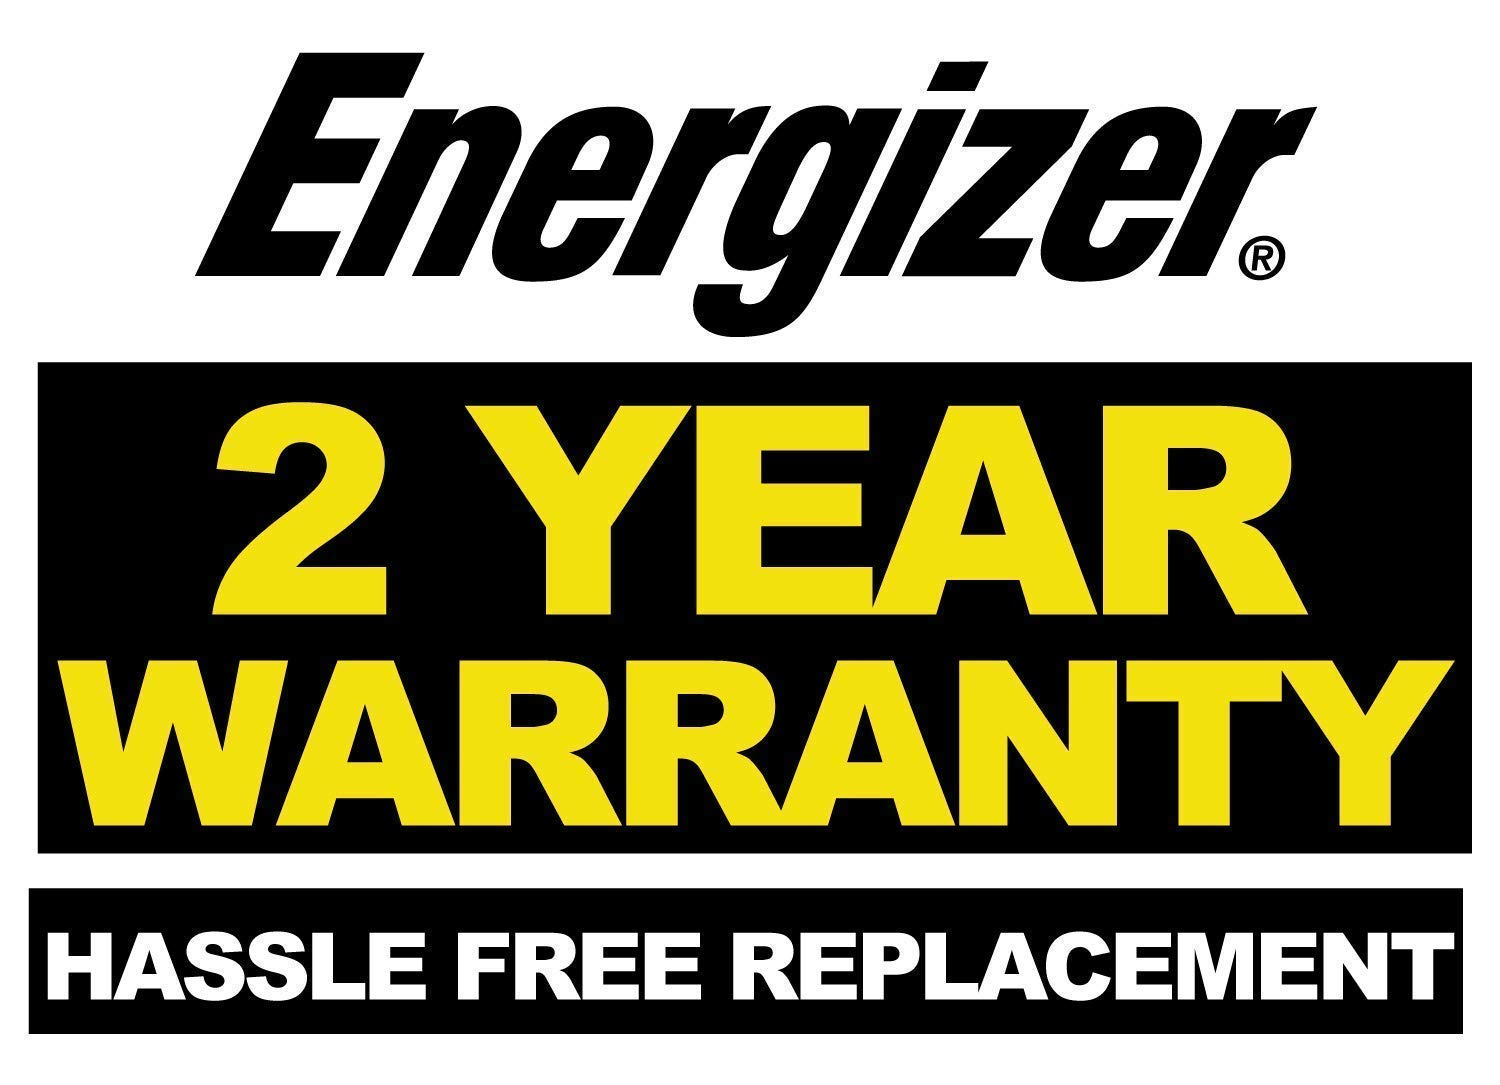 ENERGIZER 2000 Watt 12V Power Inverter, Dual 110V AC Outlets, Automotive Back Up Power Supply Car Inverter,Converts 120 Volt AC with 2 USB ports 2.4A Each by Energizer (Image #6)